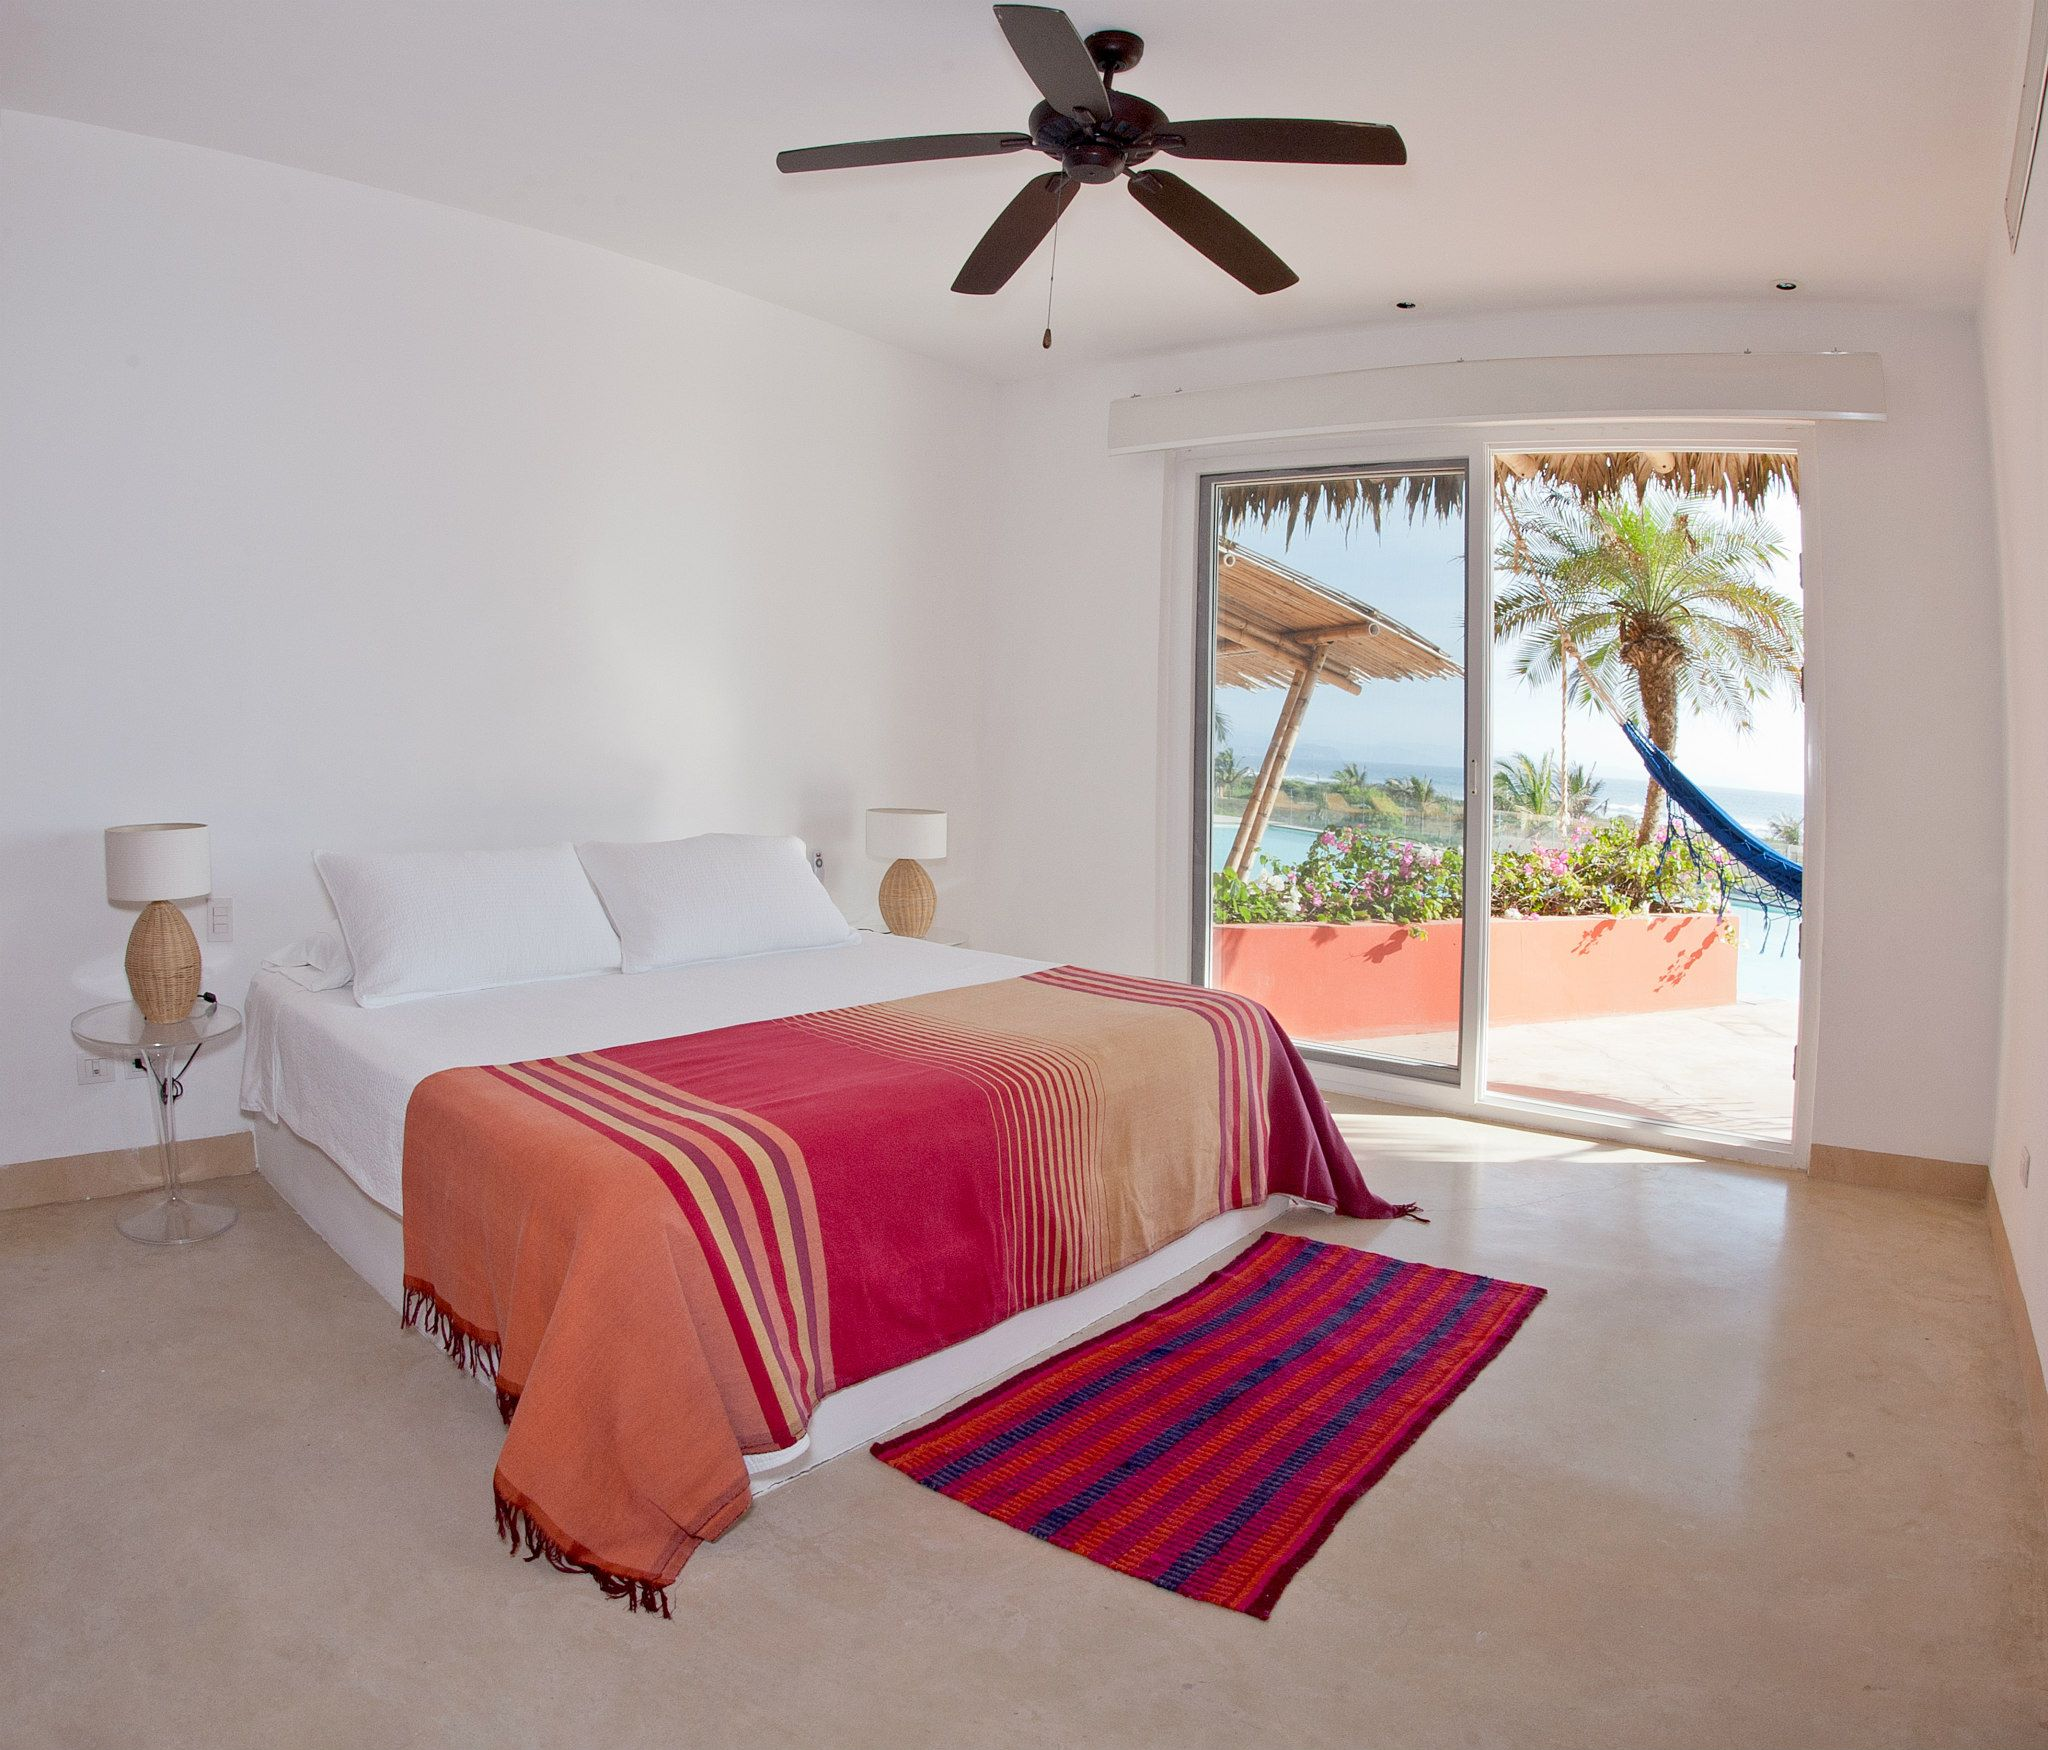 PACKAGE 3 - QUEEN SIZE W/ PRIVATE BATH  Features: Private Bath, Ocean Views, Air Conditioning, Modern Suite, Queen Size Bed